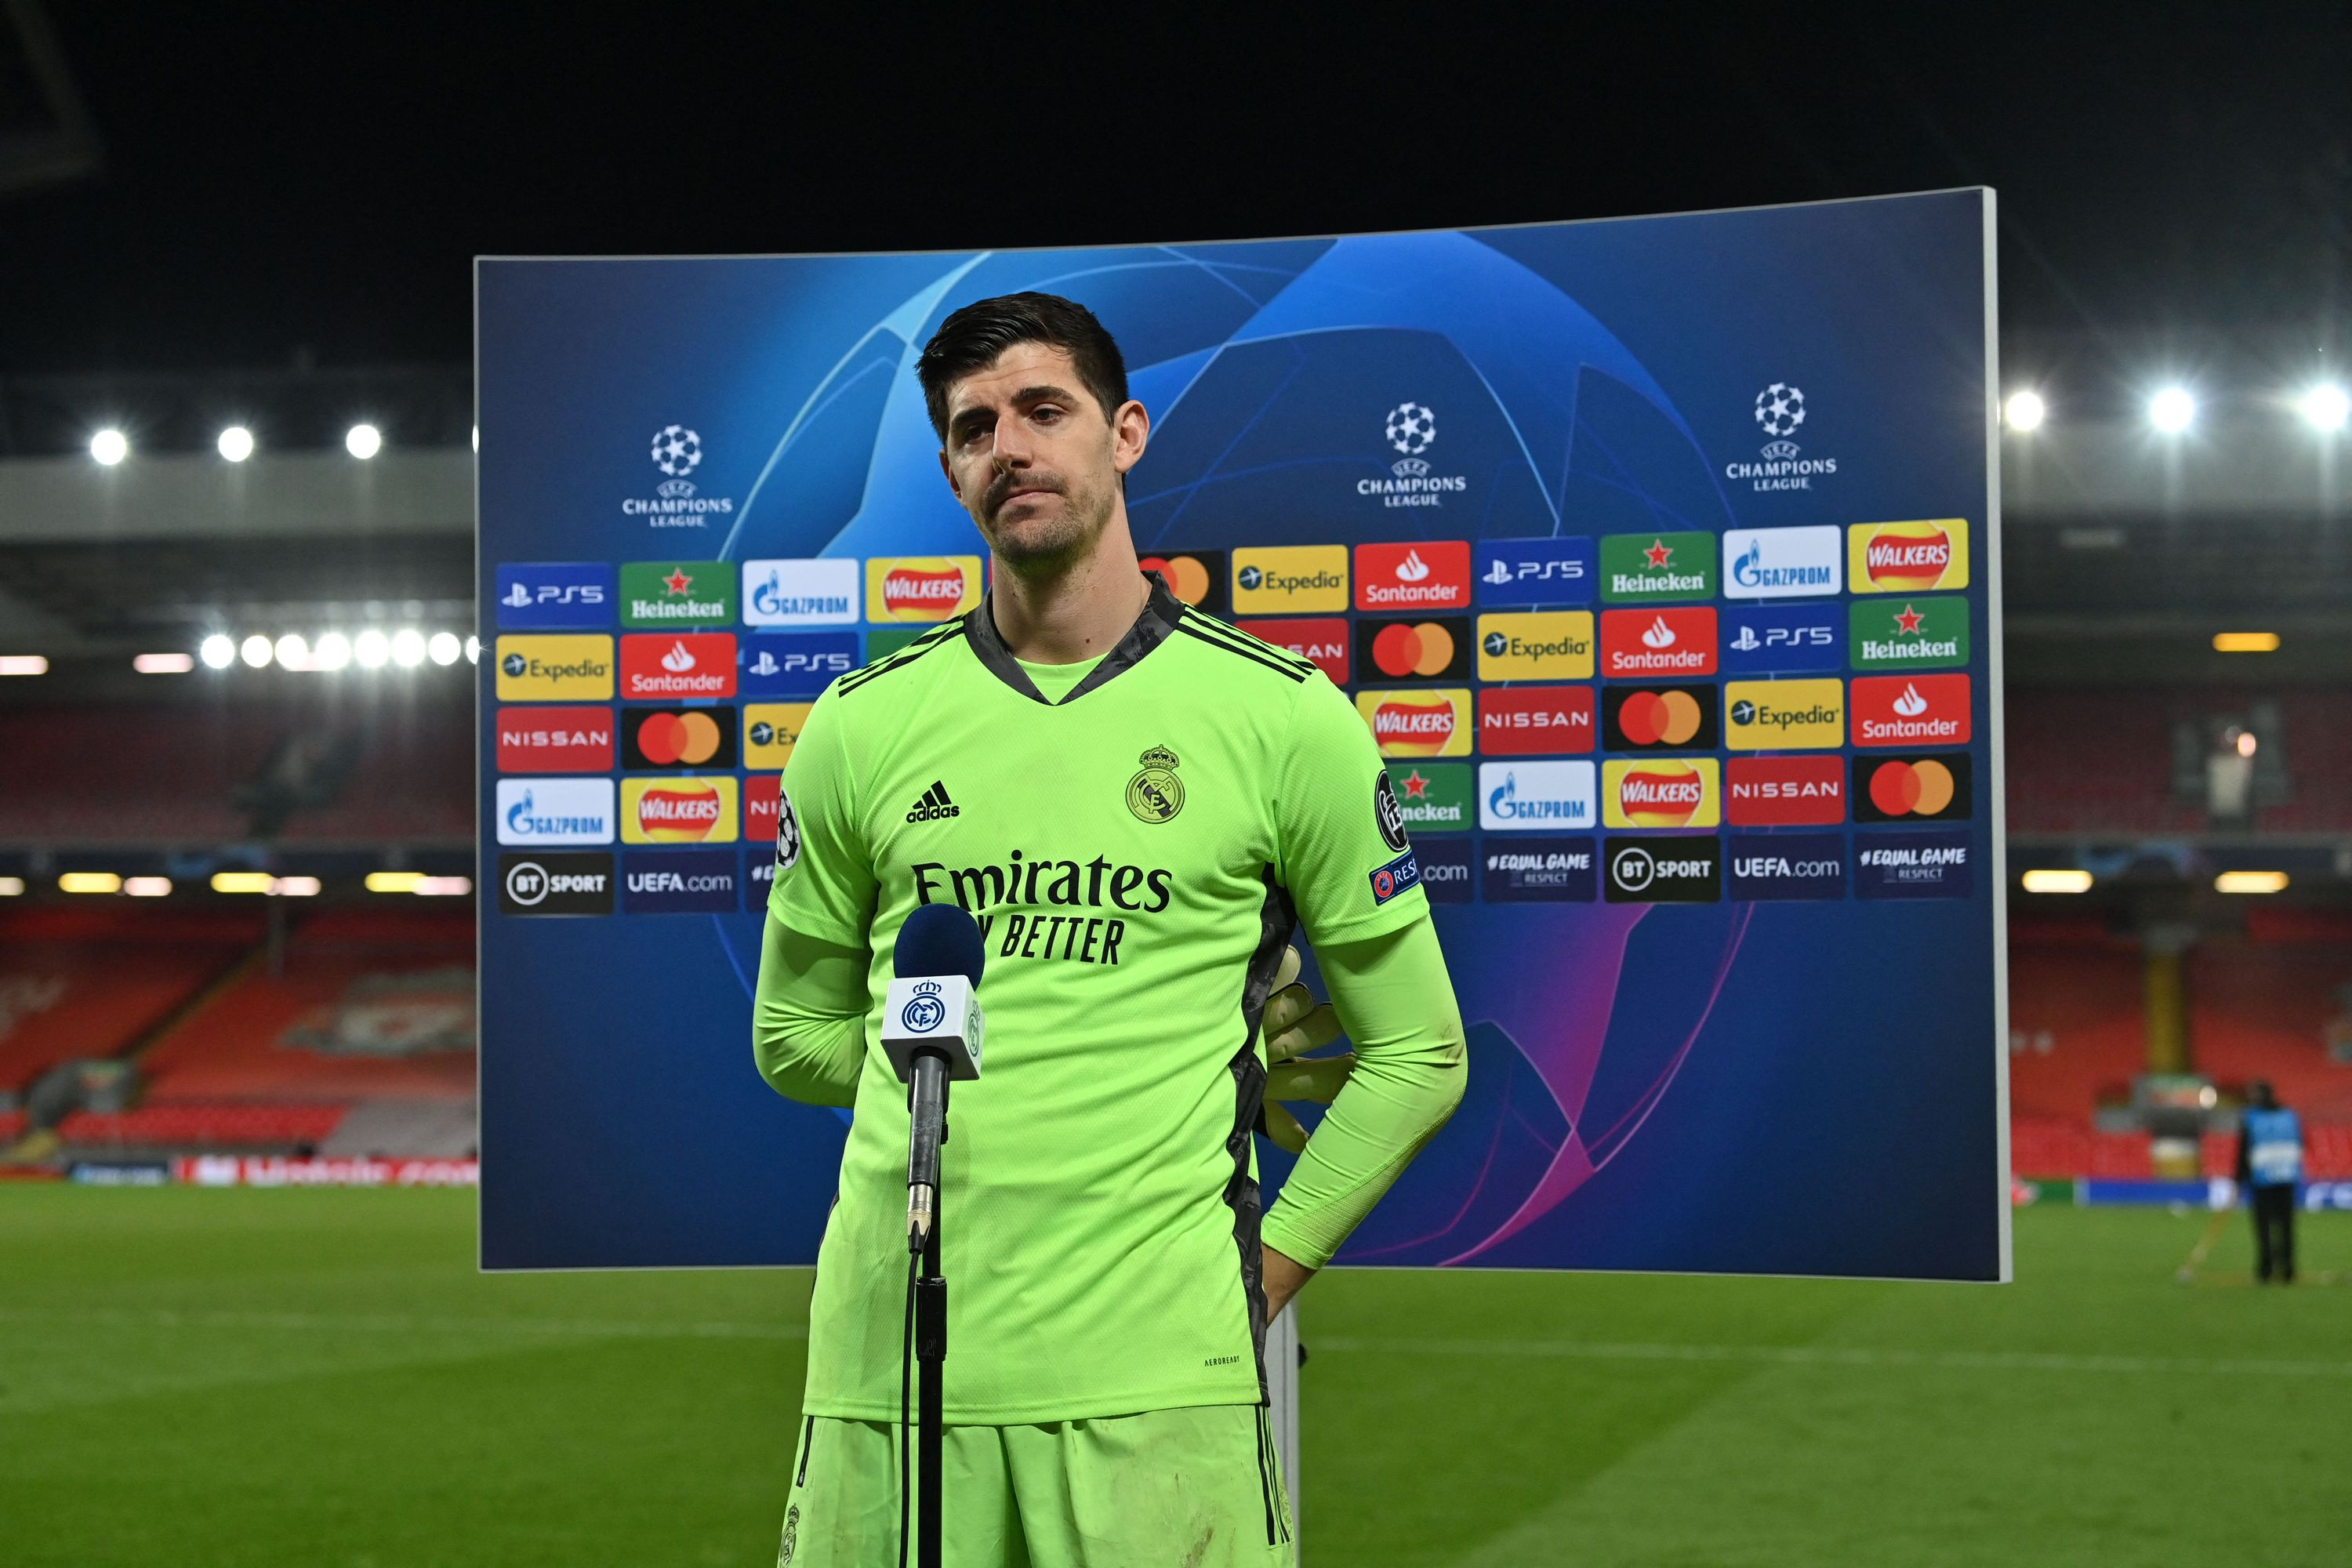 Courtois opens up on acrimonious Chelsea exit ahead of Champions League reunion